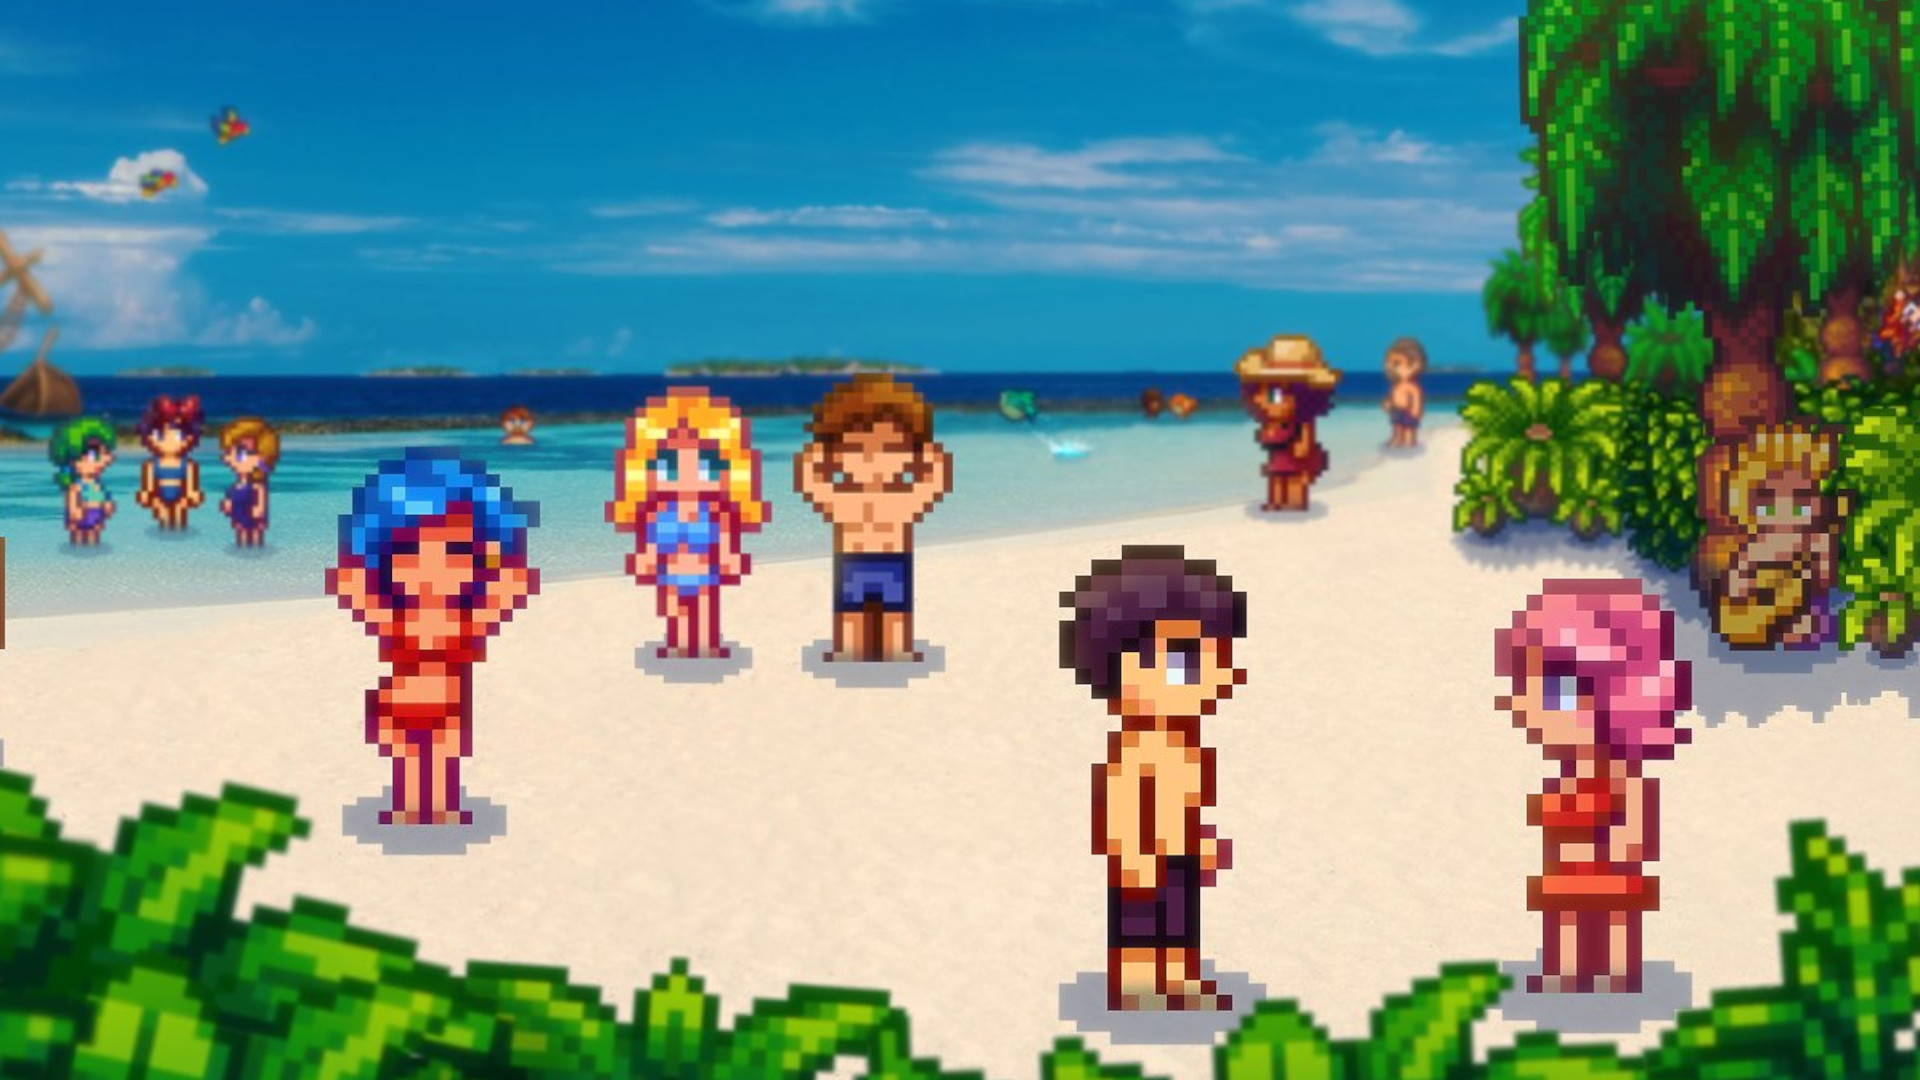 Stardew Valley Expanded update adds new maps, new events, and lets you marry the wizard